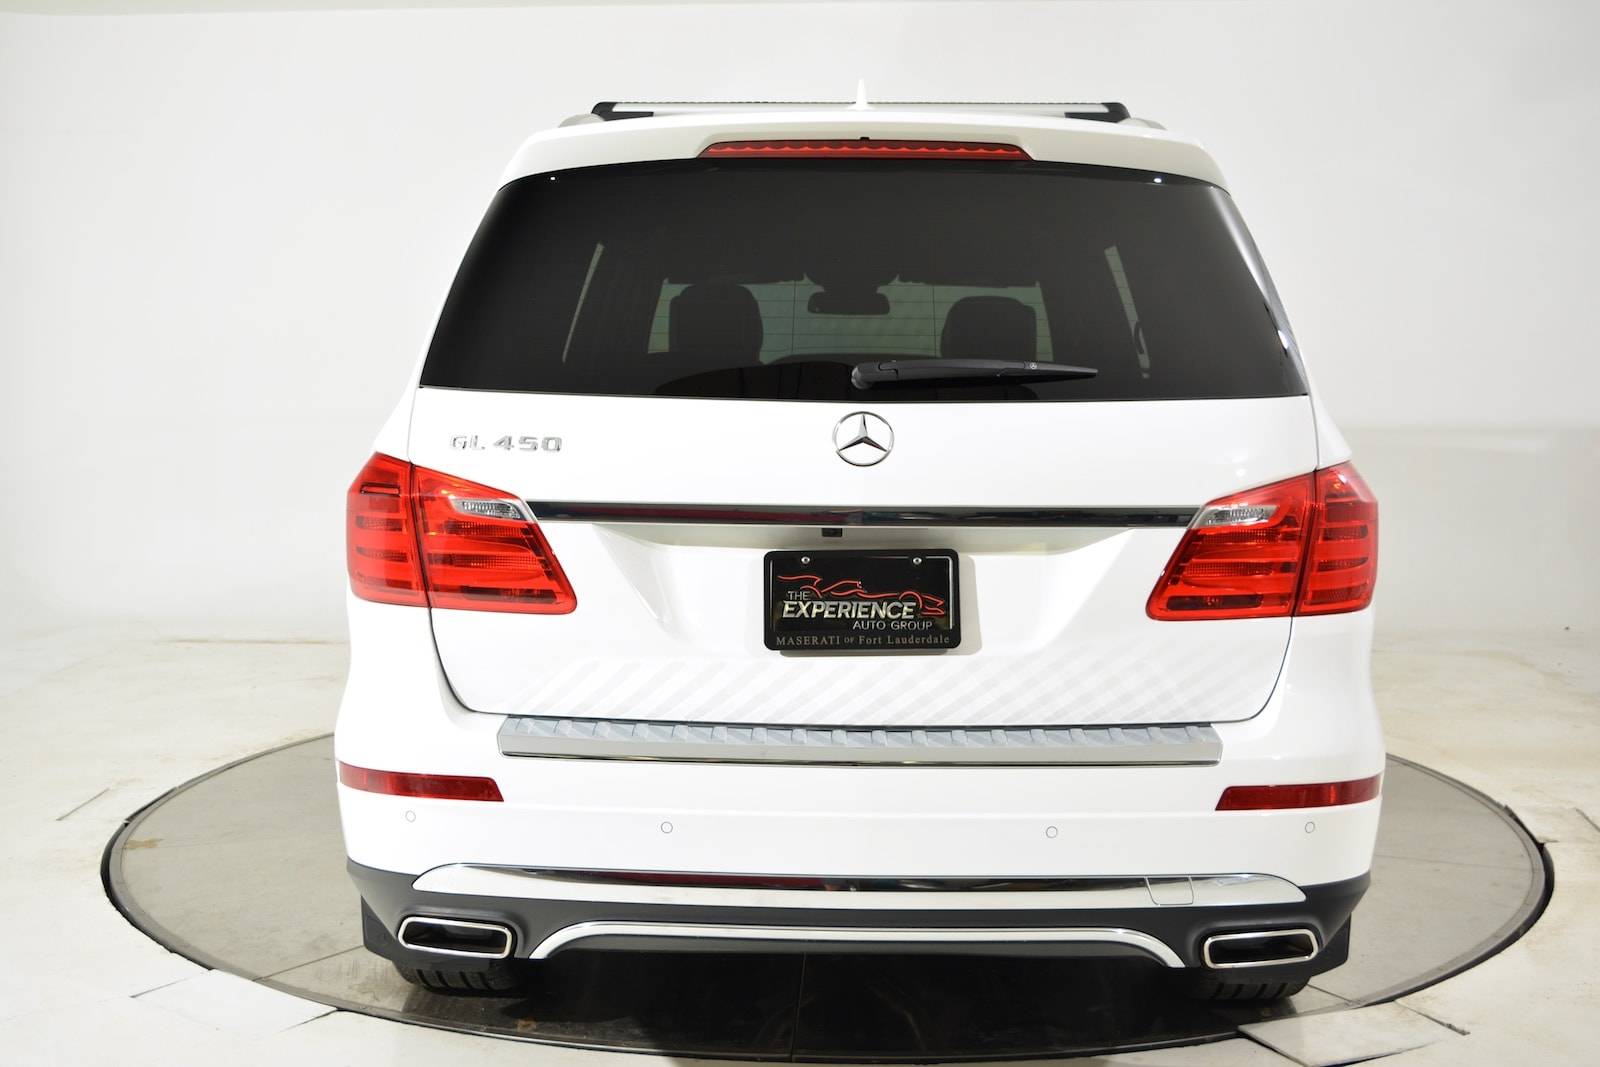 ... 2016 MERCEDES BENZ GL450 4MATIC SUV For Sale In Fort Lauderdale, FL At  Maserati ...